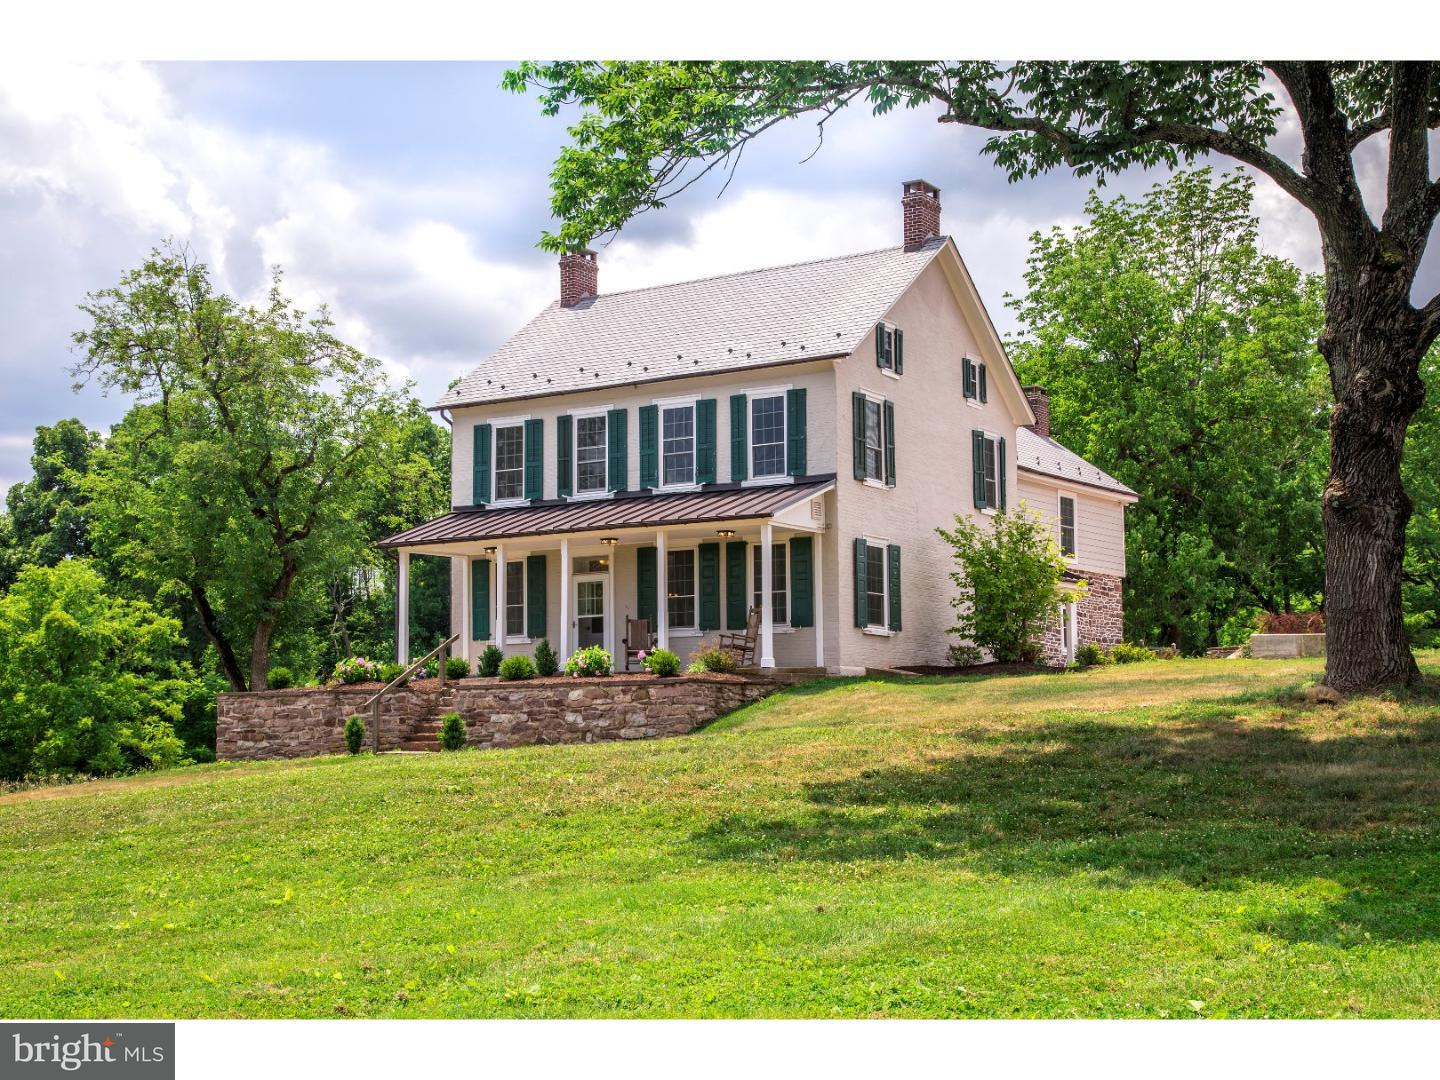 2135 Route 212 Coopersburg, PA 18036